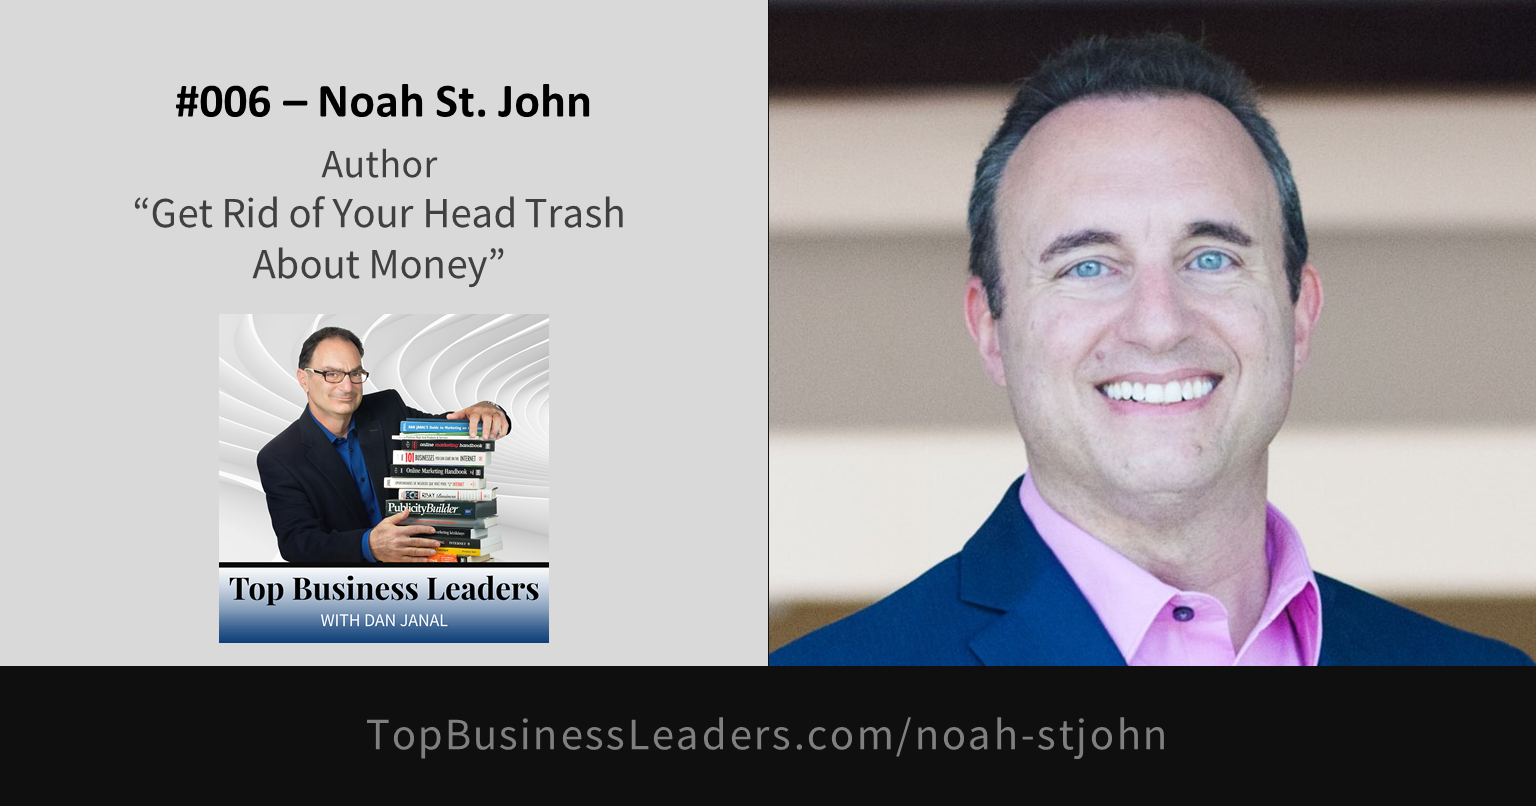 noah-st-john-author-get-rid-of-your-head-trash-about-money